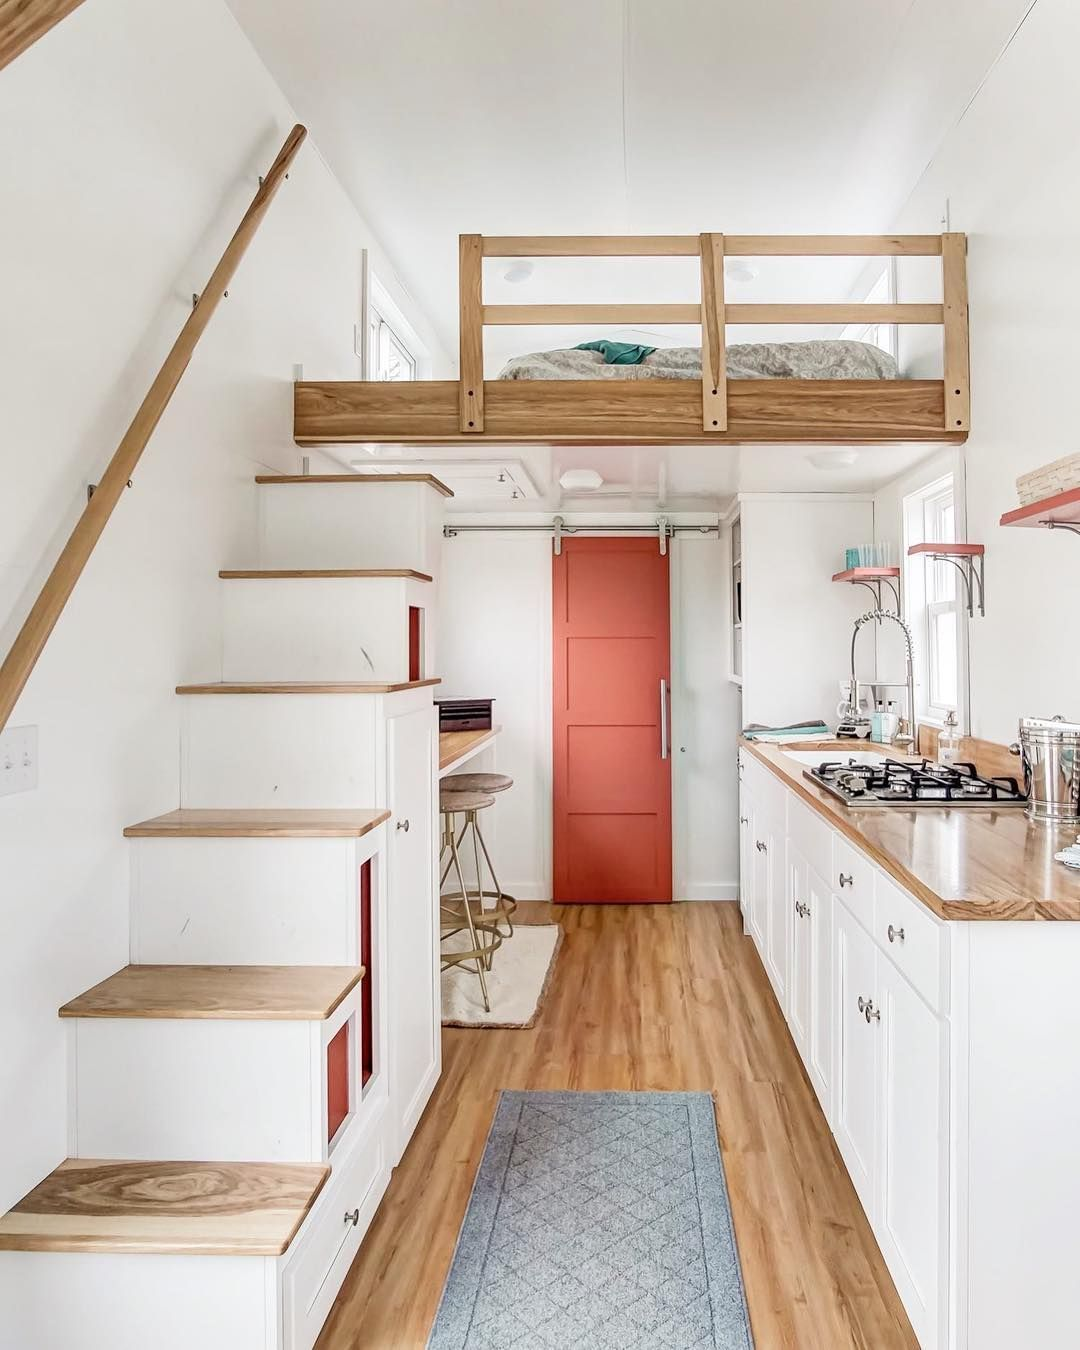 Modern Tiny Living On Instagram In An Era Where Tiny Homes Are Exploding In Price And Opulence Tiny House Kitchen Tiny House Design Tiny House Living Room